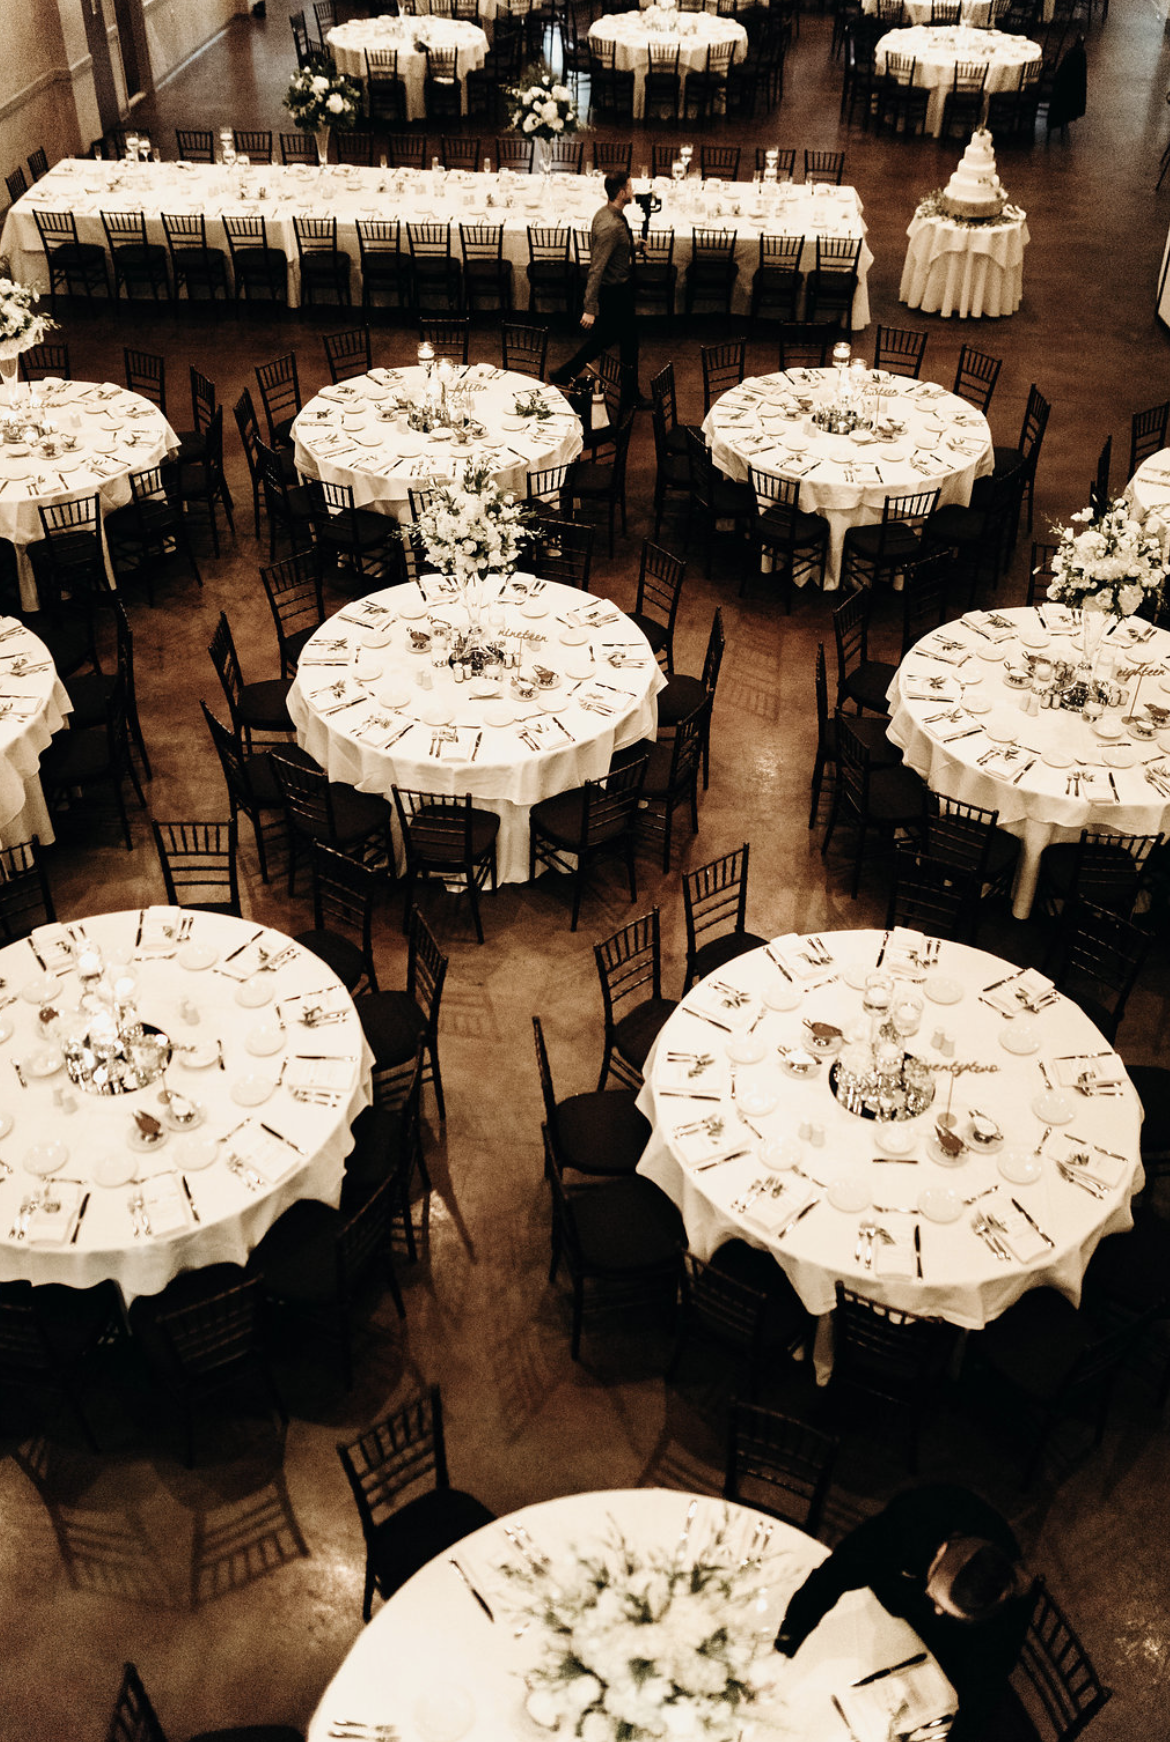 Valerie-and-TJ-McConnell-Wedding-Coordination-by-Cassandra-Clair-Event-Prep-Pittsburgh-Wedding-53.png